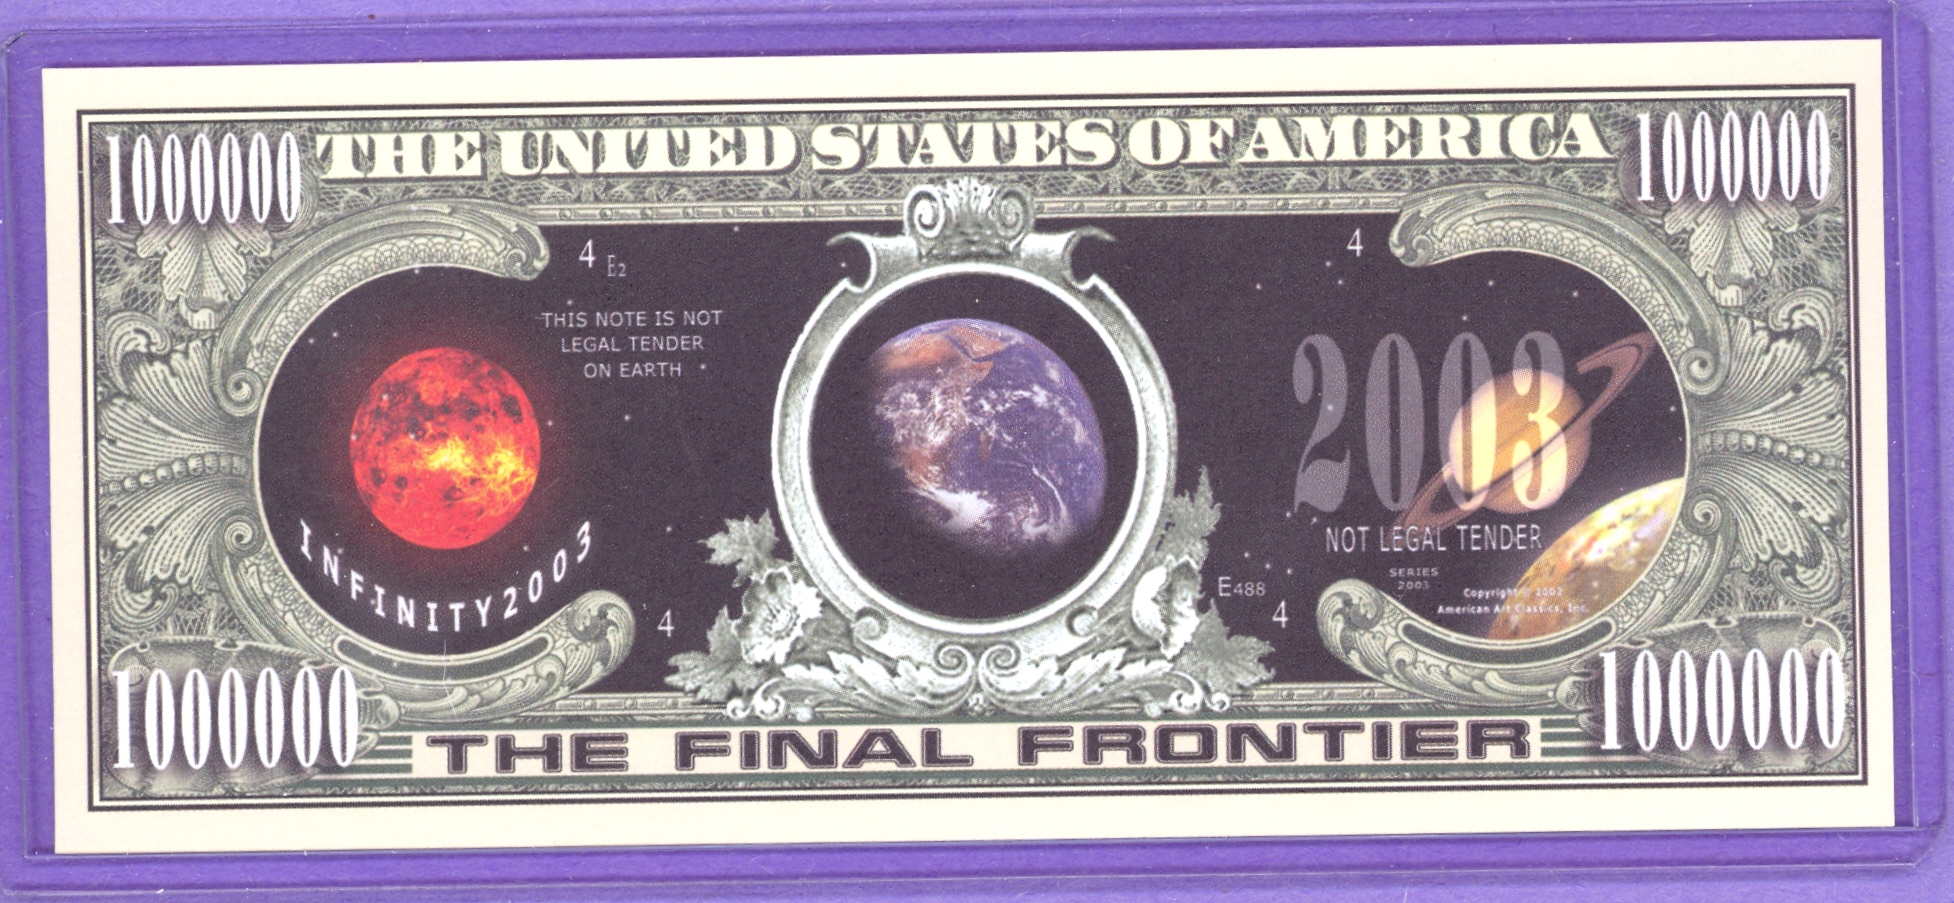 The Final Frontier $1,000,000 Planetary Dollars Note